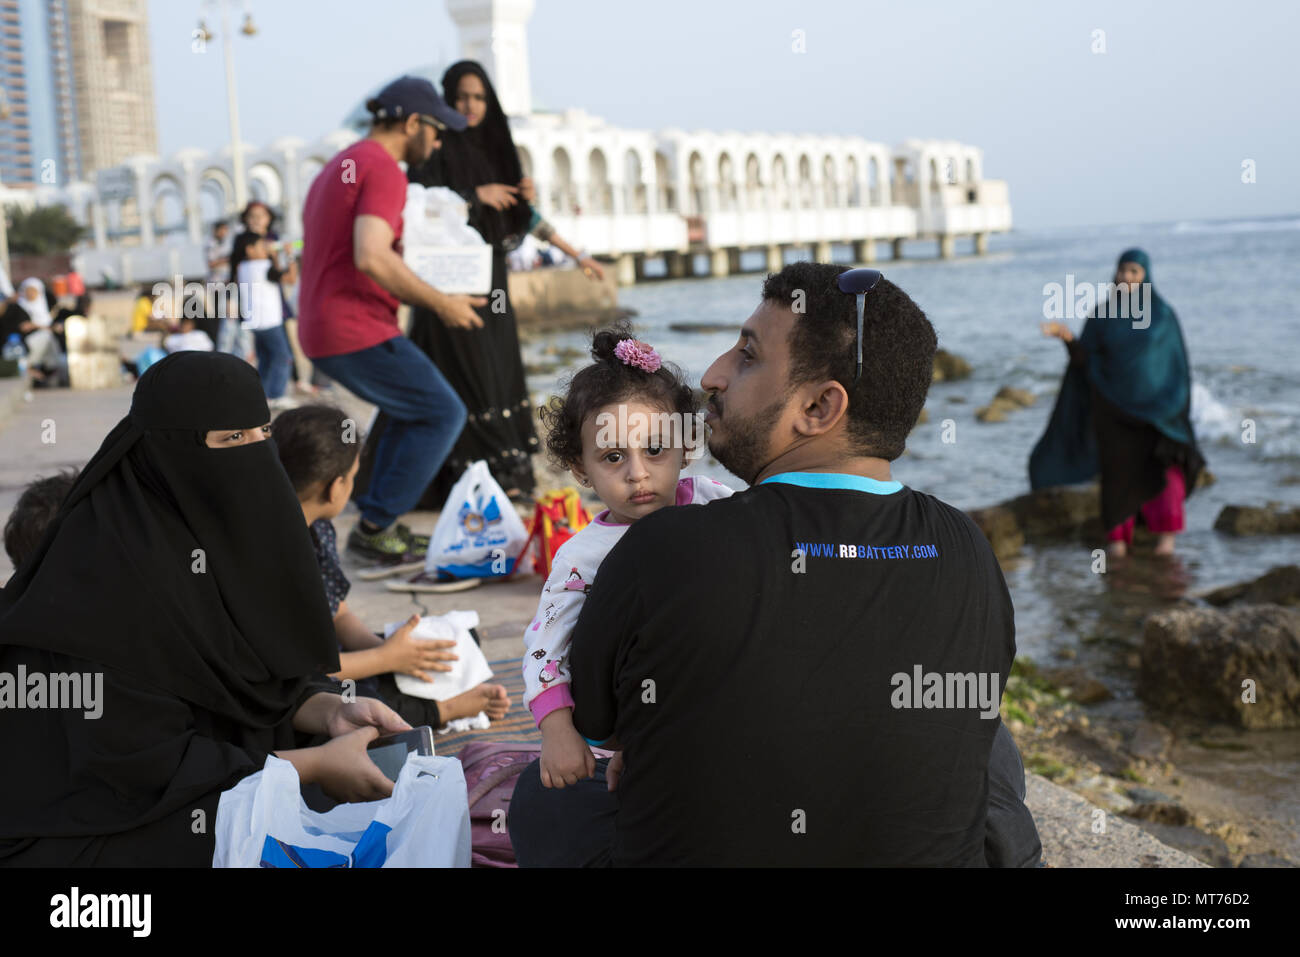 Muslims gathered by floating mosque in Jeddah, Saudi Arabia in preparation of breaking the fast during Ramada - Stock Image